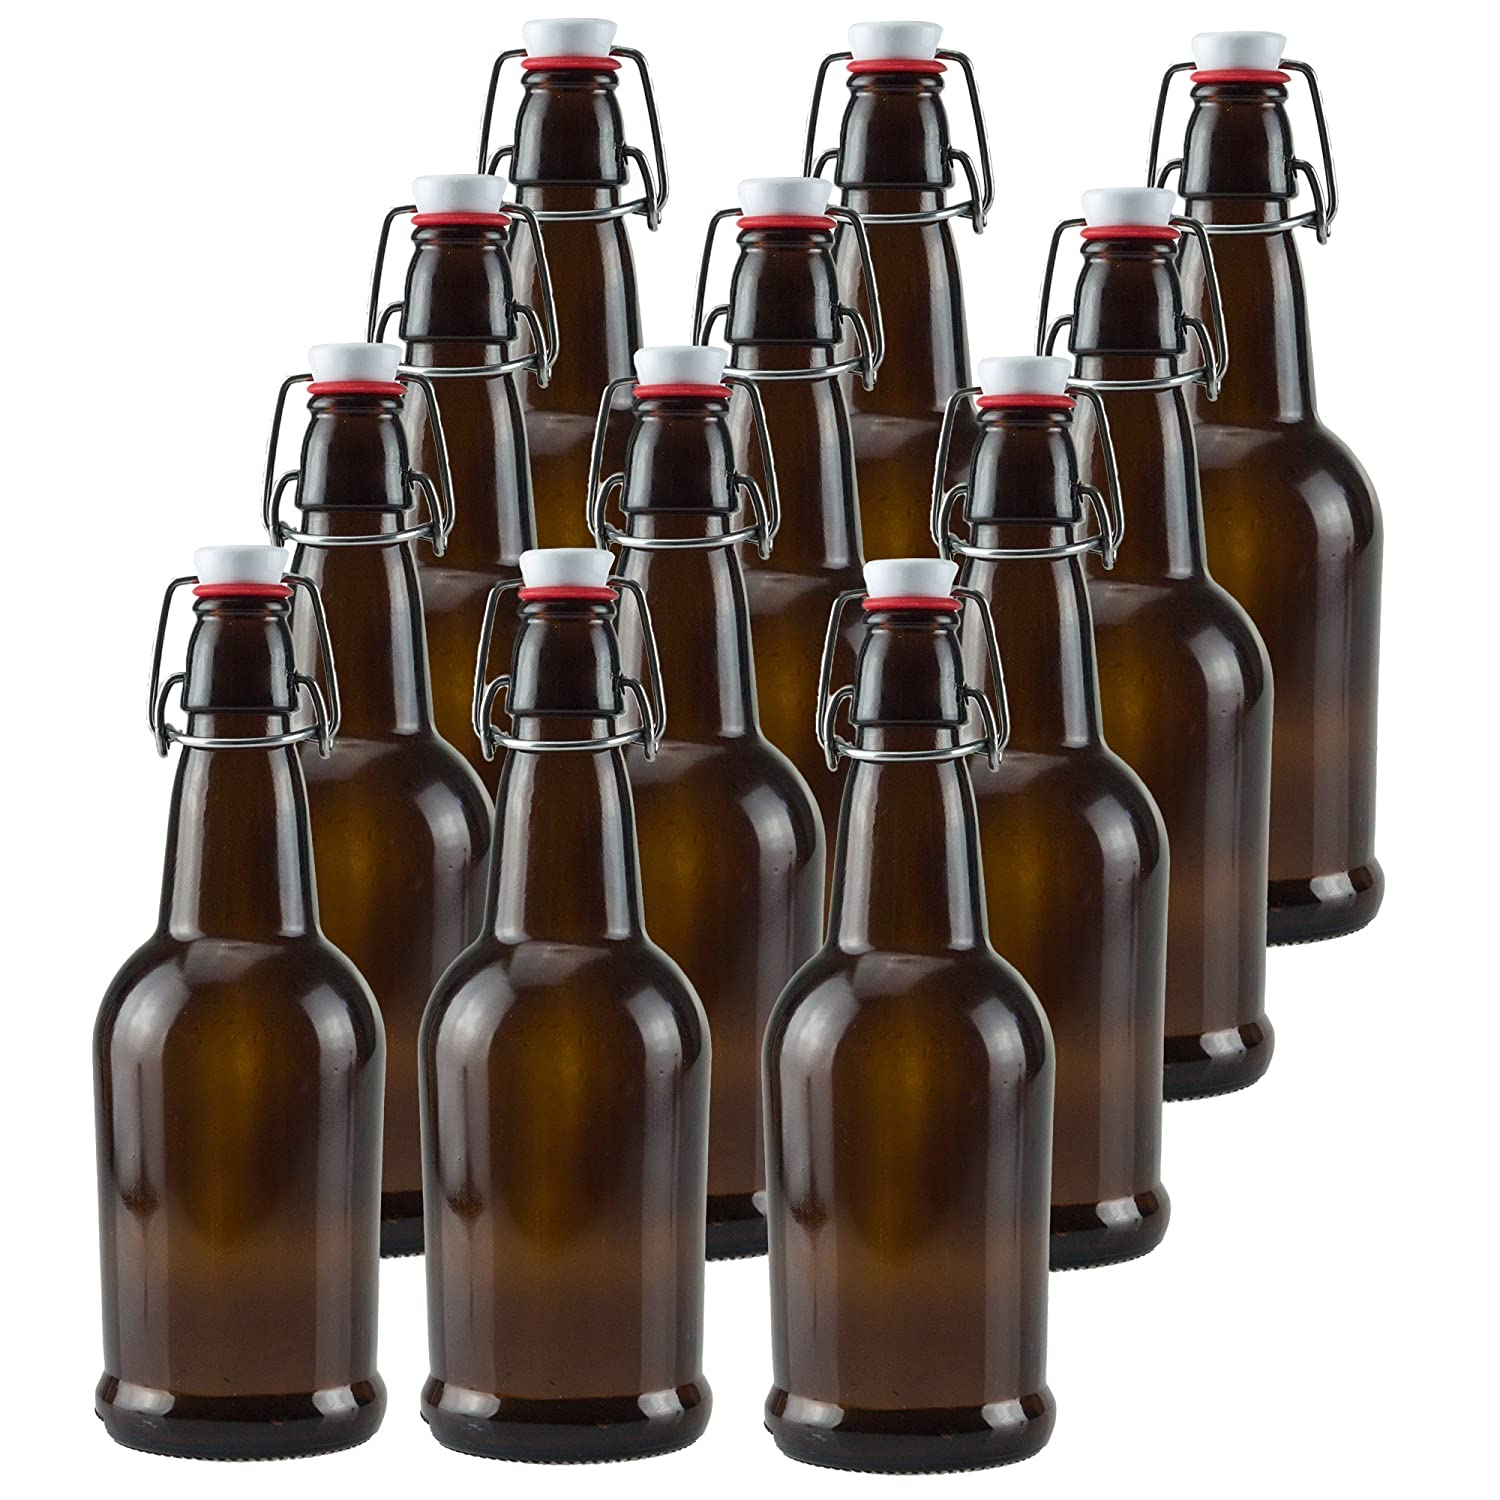 16 oz Amber Glass Beer Bottles for Home Brewing 6 Pack with Flip Caps Ilyapa IL-BTL16A-06